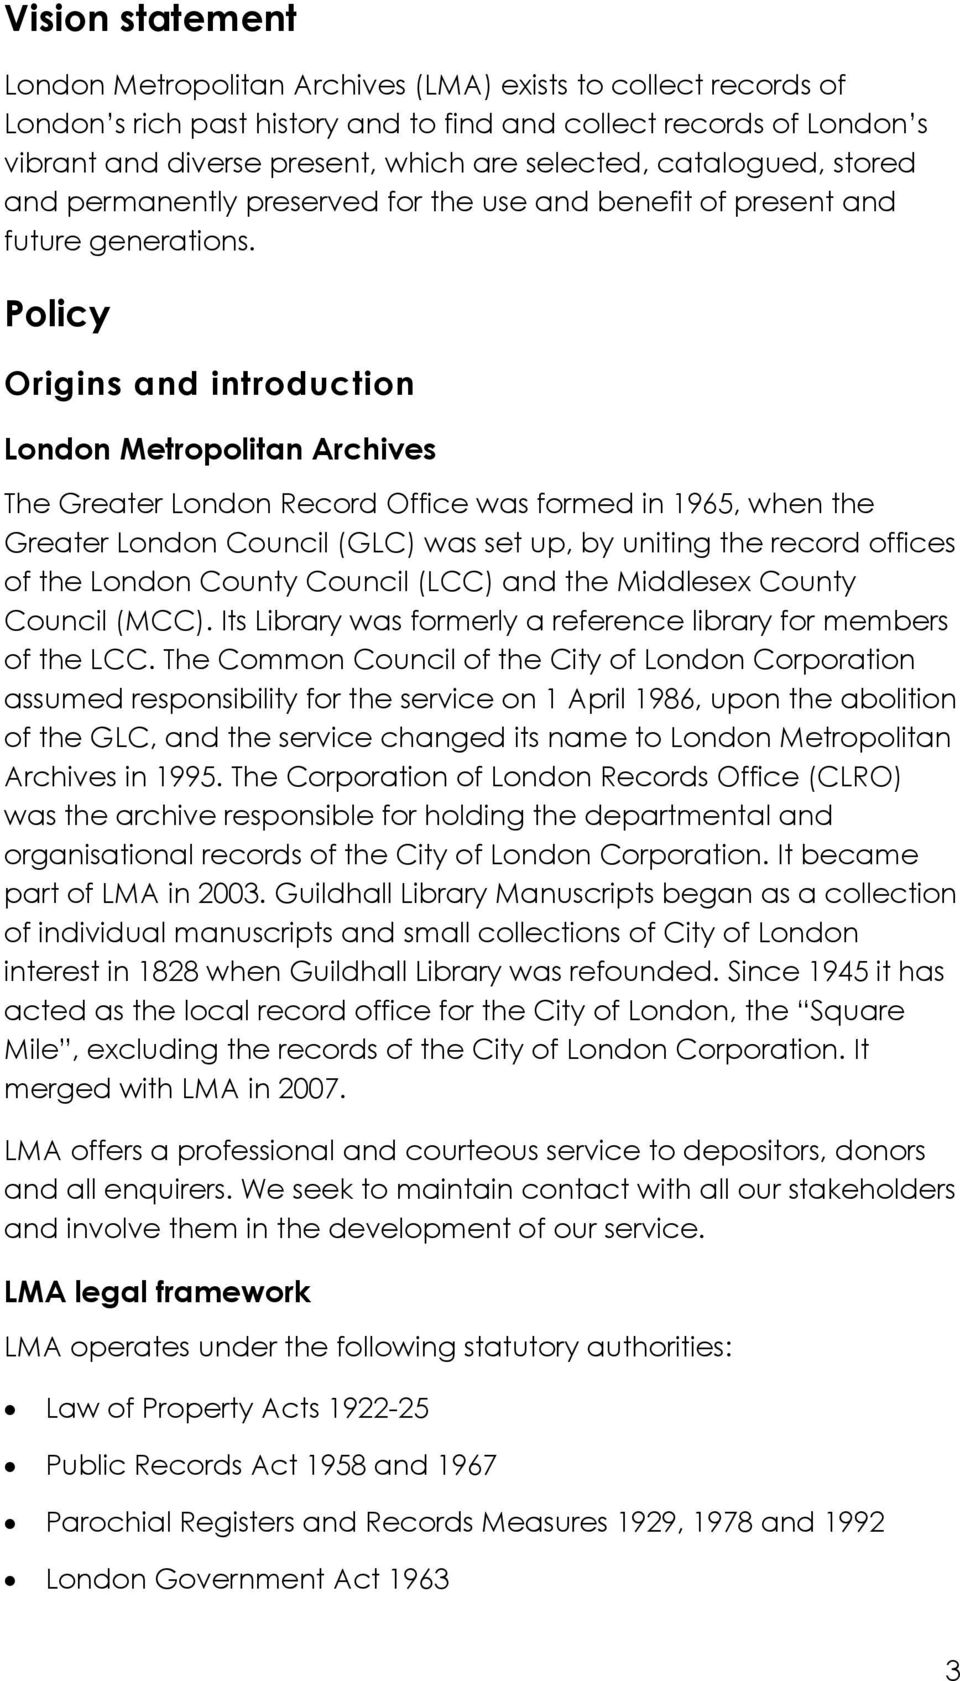 Policy Origins and introduction London Metropolitan Archives The Greater London Record Office was formed in 1965, when the Greater London Council (GLC) was set up, by uniting the record offices of